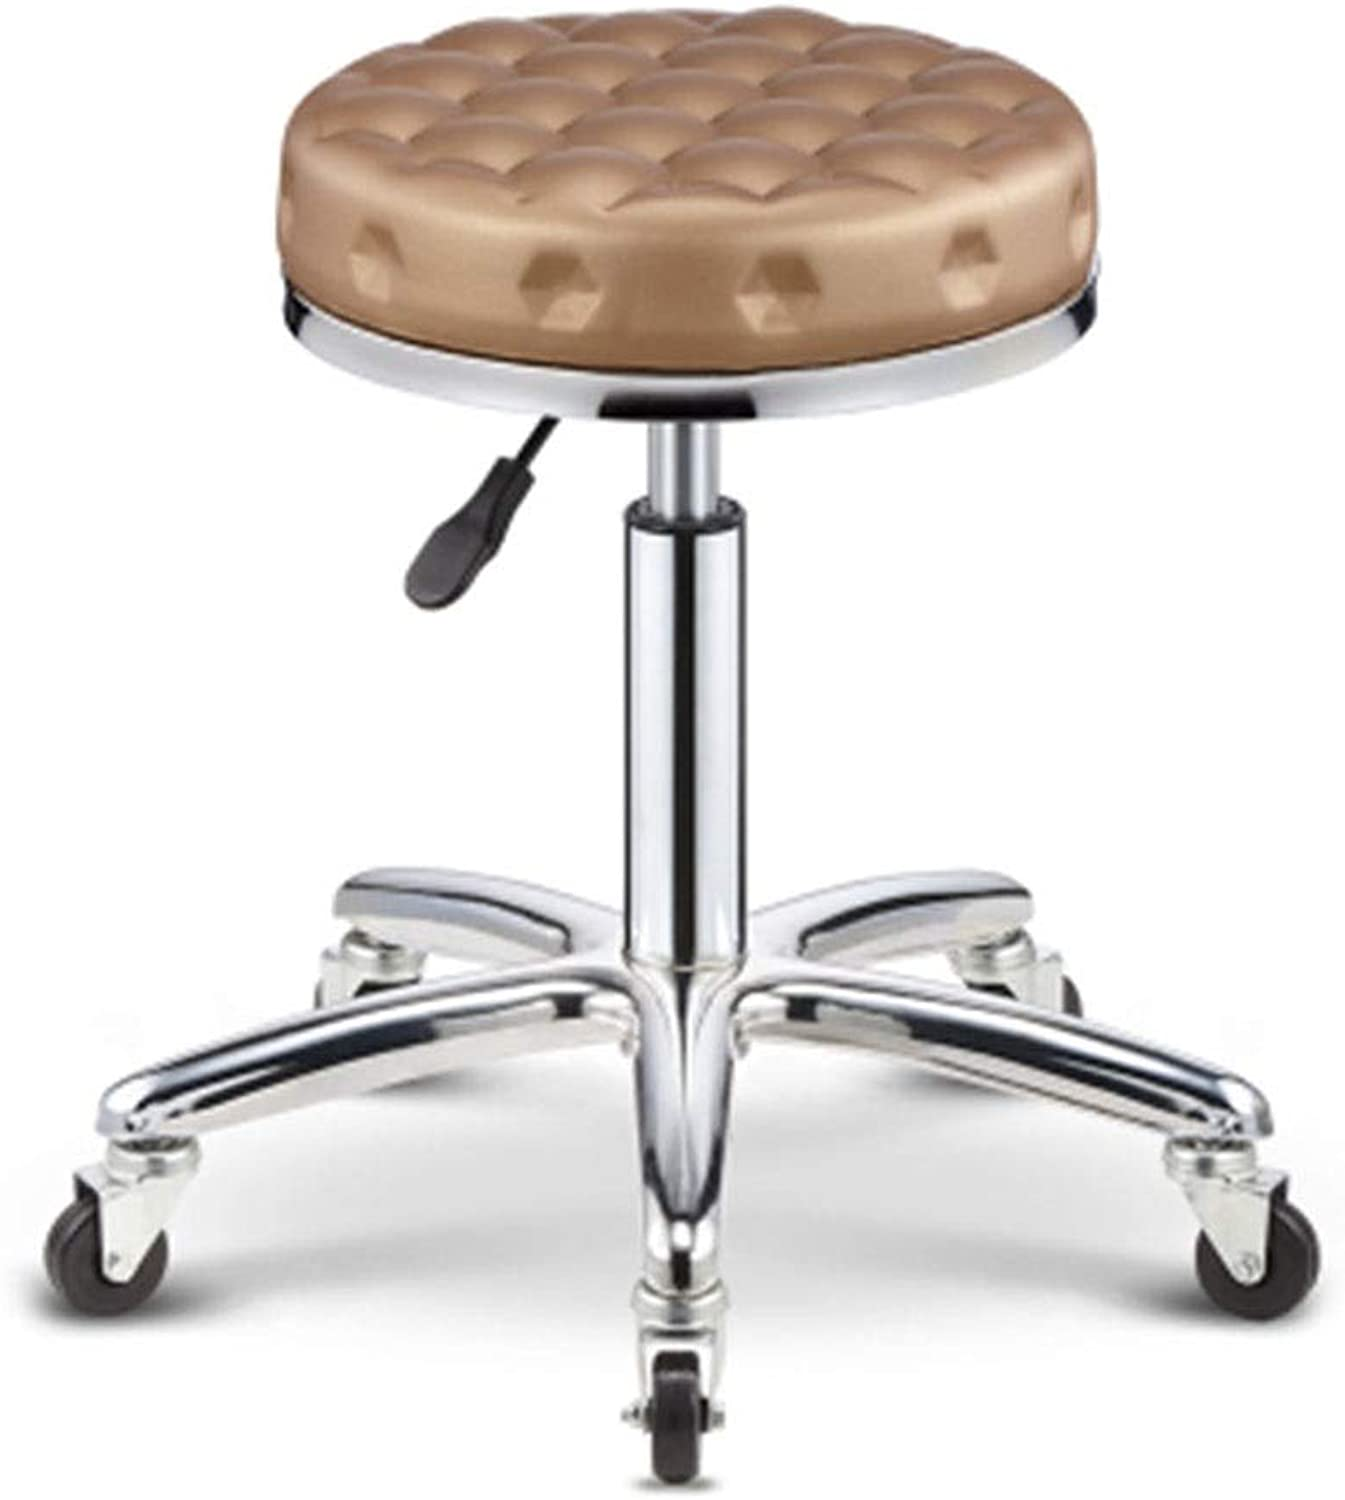 68f1f3f8dea7 1 colors 5 Round Pulley Bench Work Stool Lifting redate Chair Barber ...